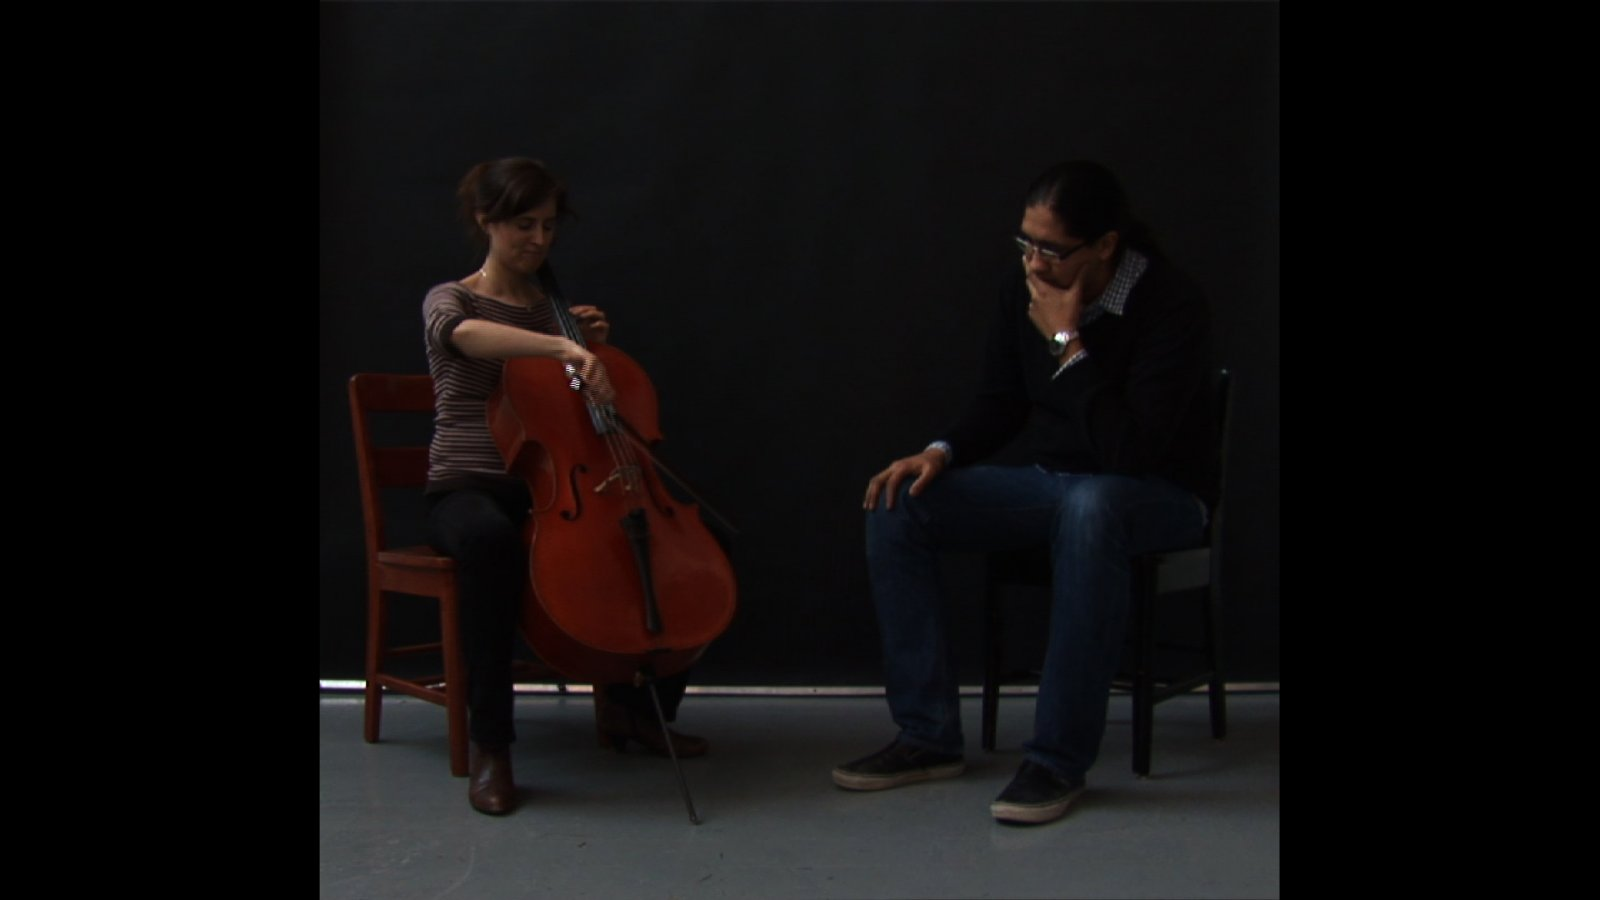 Duane Linklater, It's hard to get in my system (still), 2012, digital video with sound, 6 minutes, 42 seconds